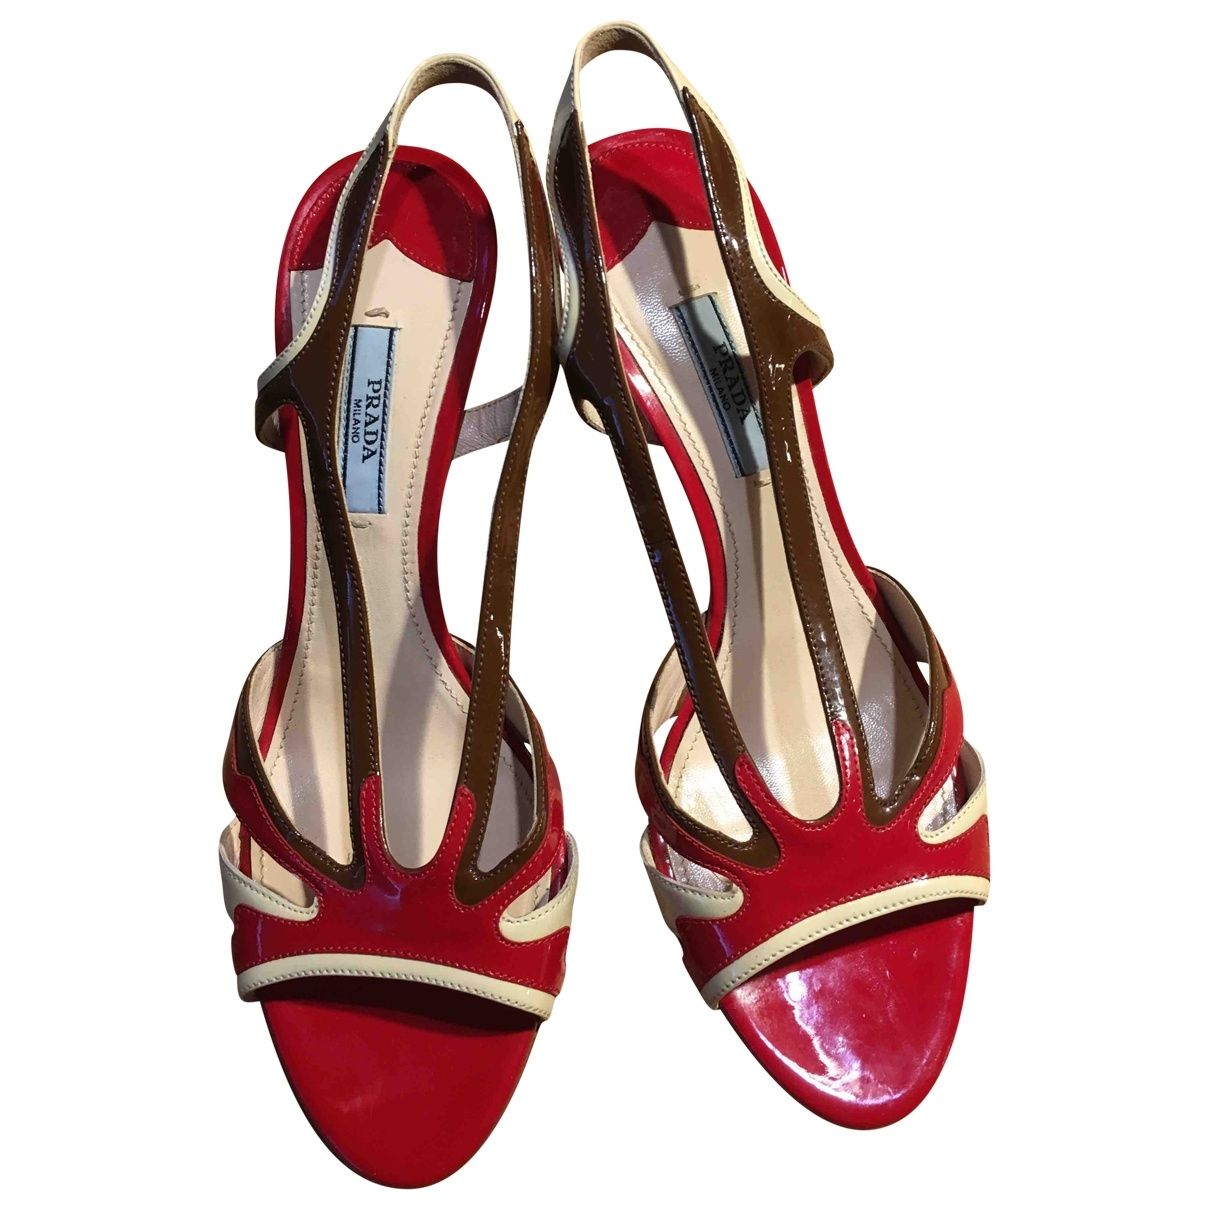 Prada \N Red Patent leather Sandals for Women 38.5 EU